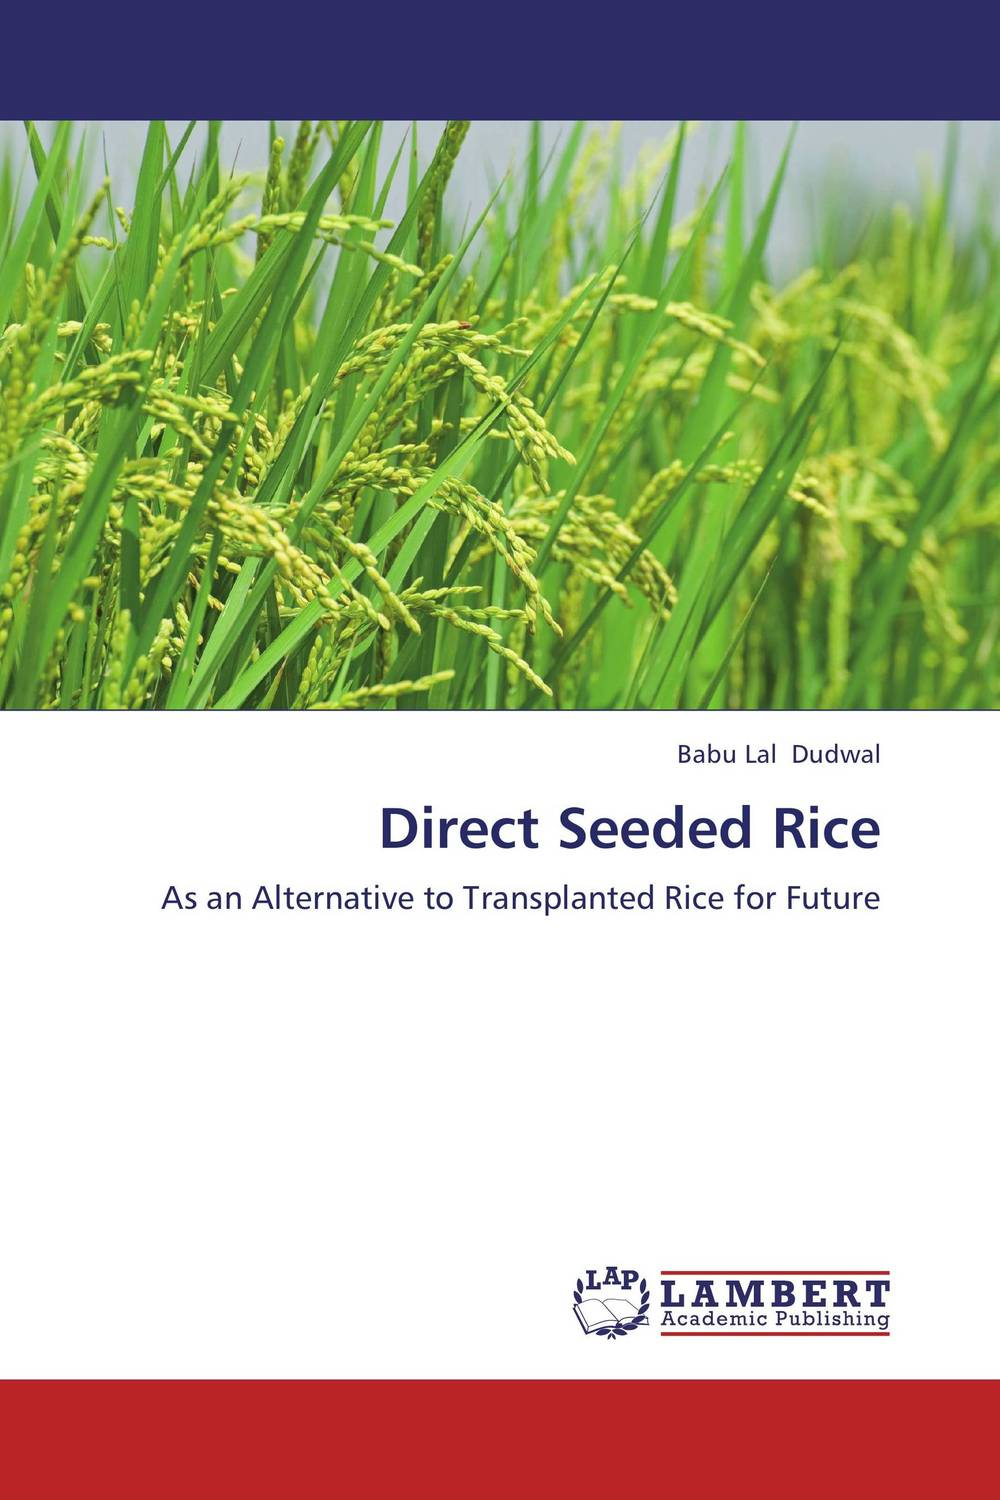 Direct Seeded Rice weed management in organic rice production